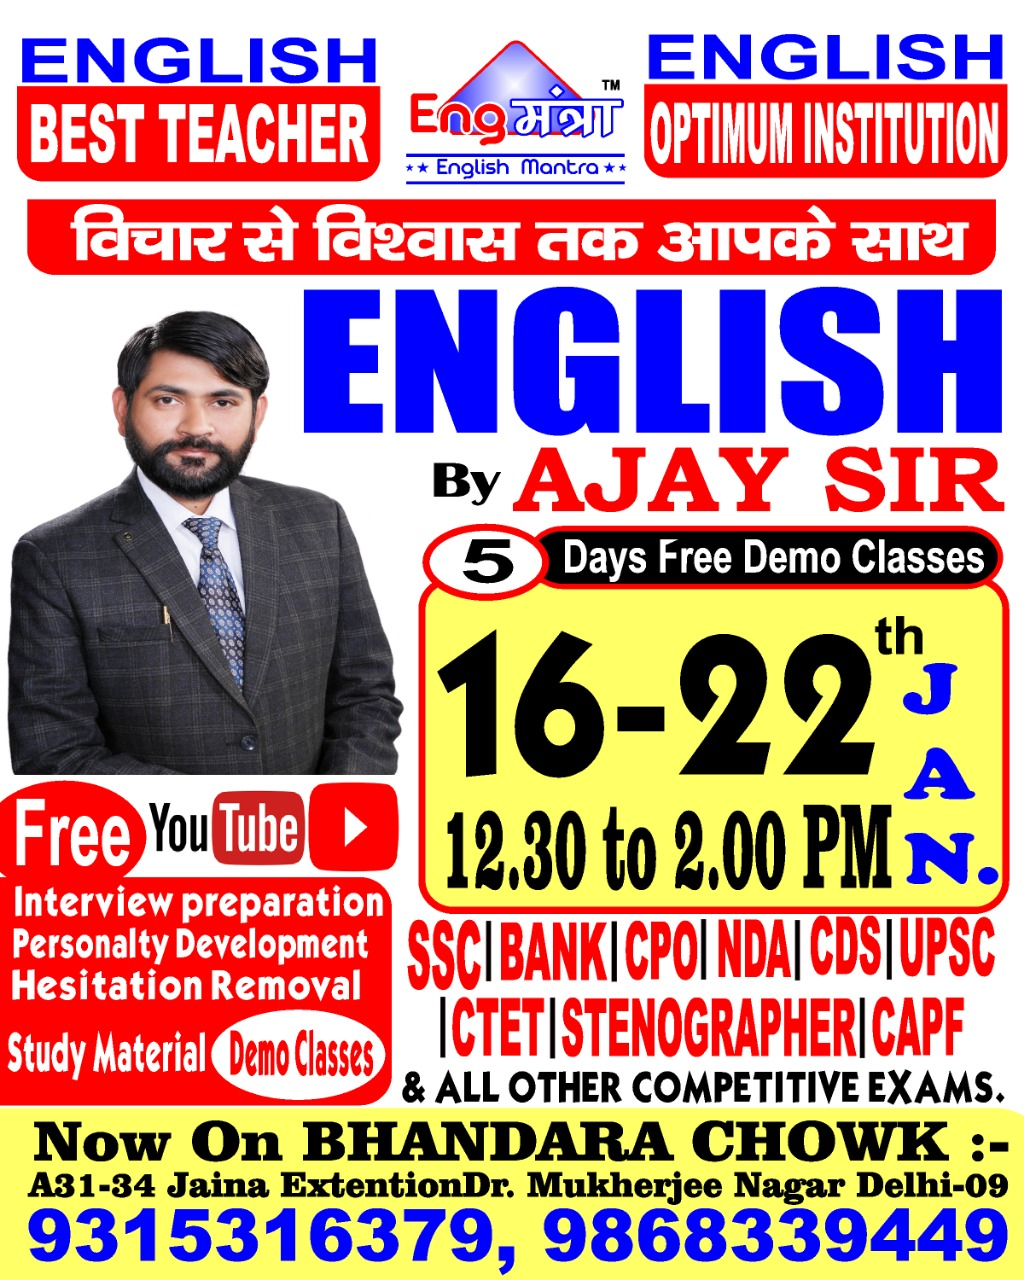 Session |04 English Mantra By Ajay Sir